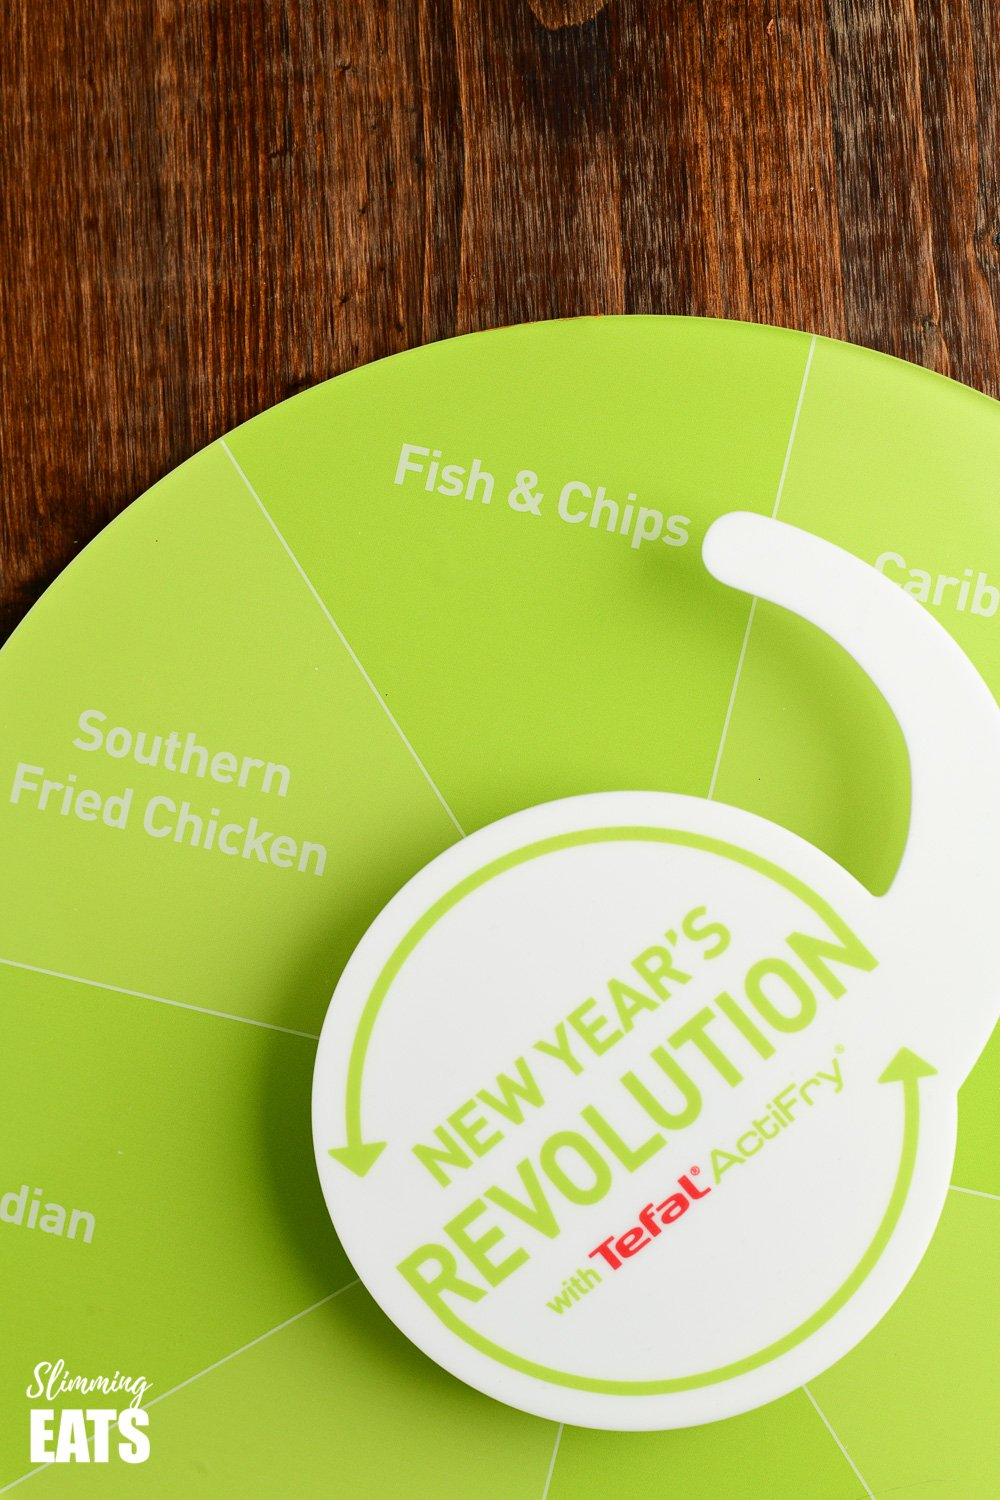 picture of Tefal Actifry fish and chips New Years revolution spinner board